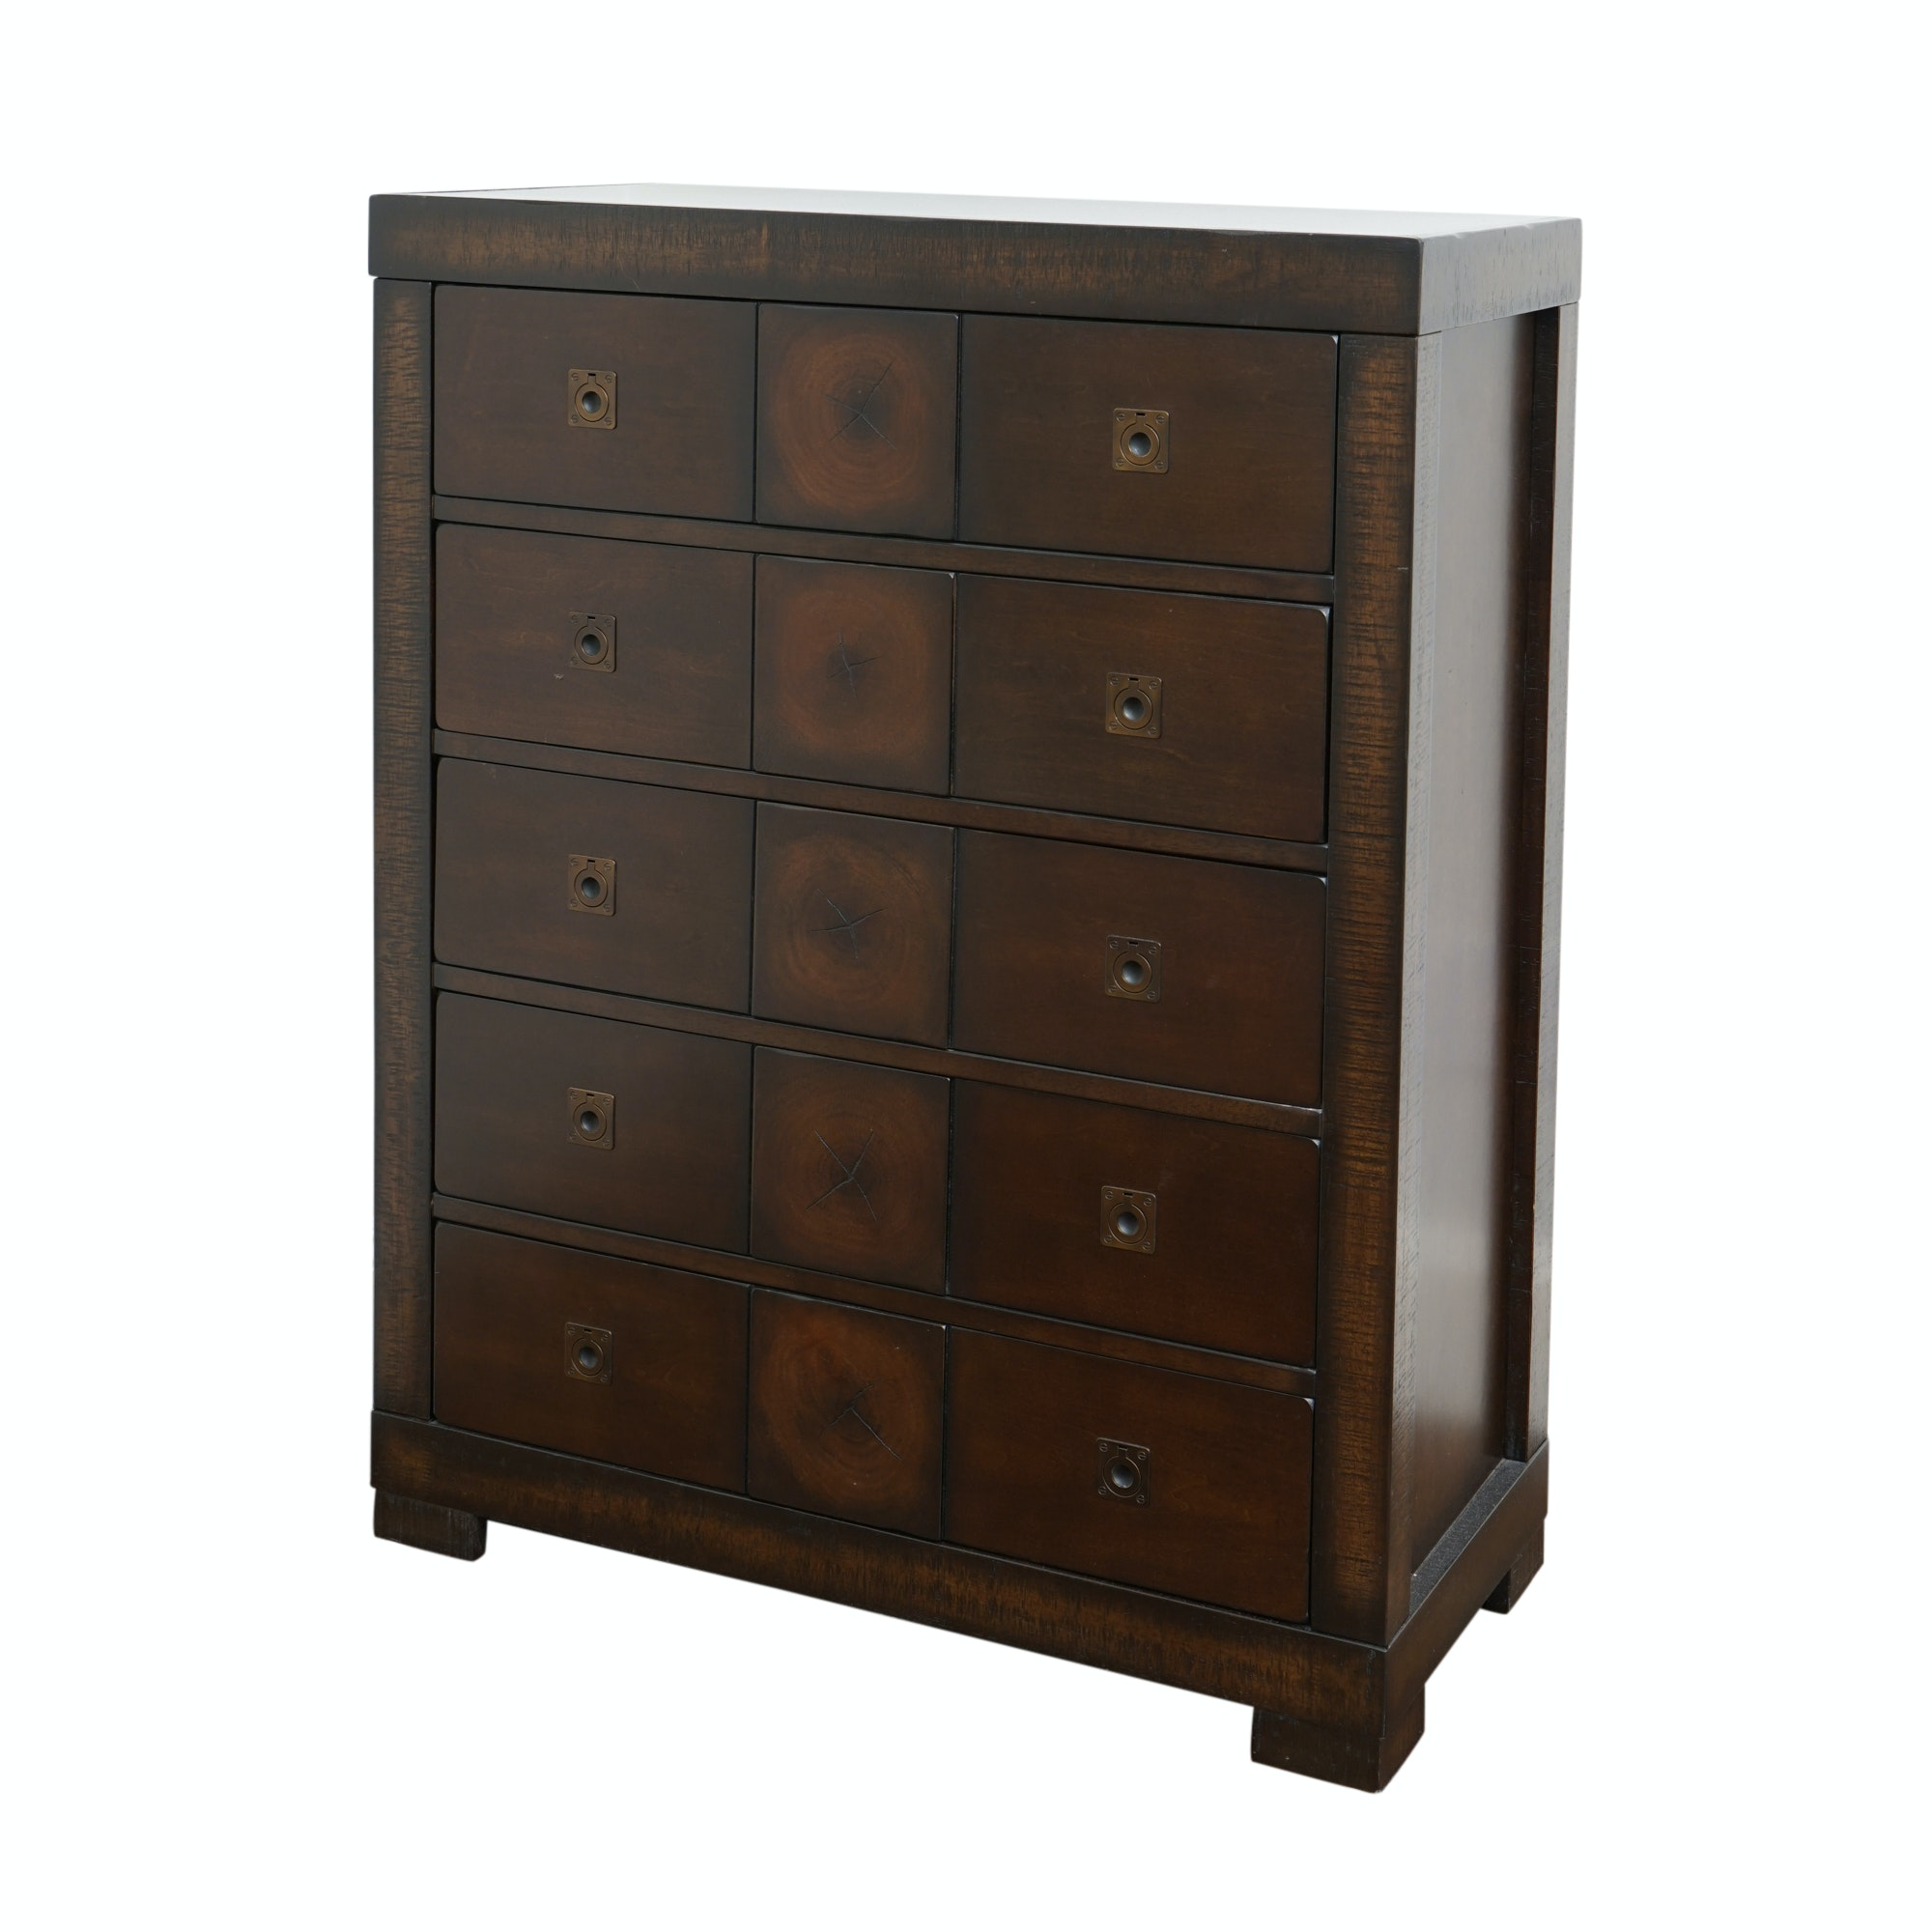 Rustic Finish Campaign Style Chest of Drawers